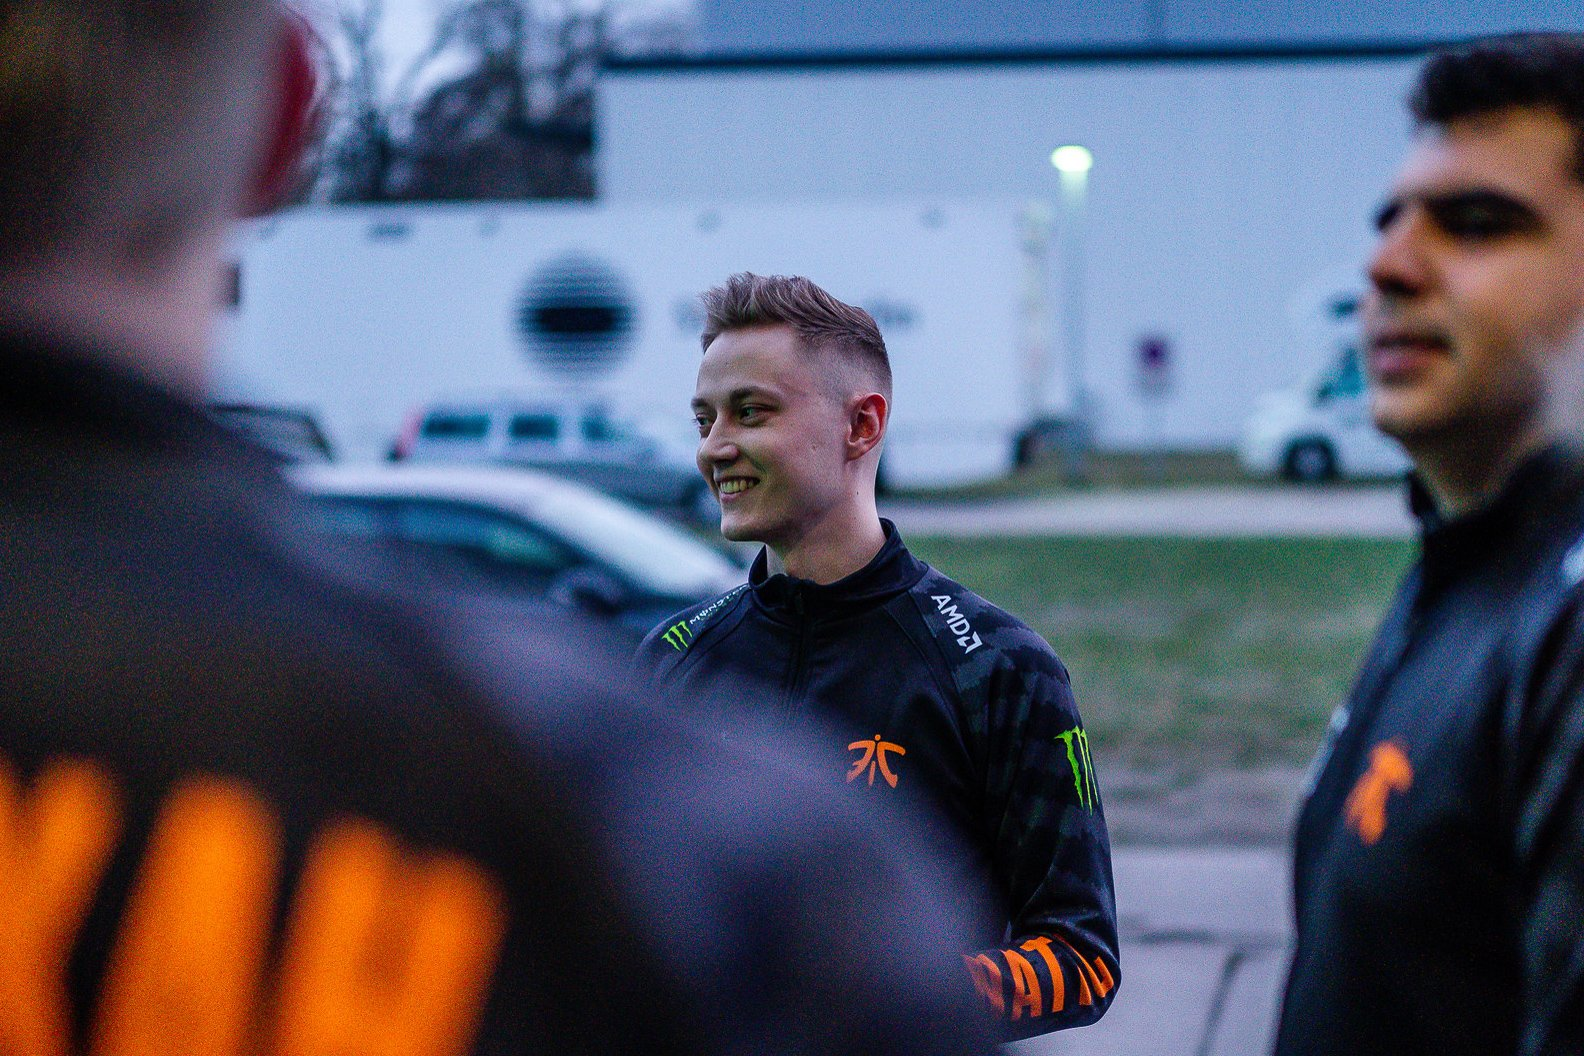 Fnatic makes it to the grand finals of LEC 2019